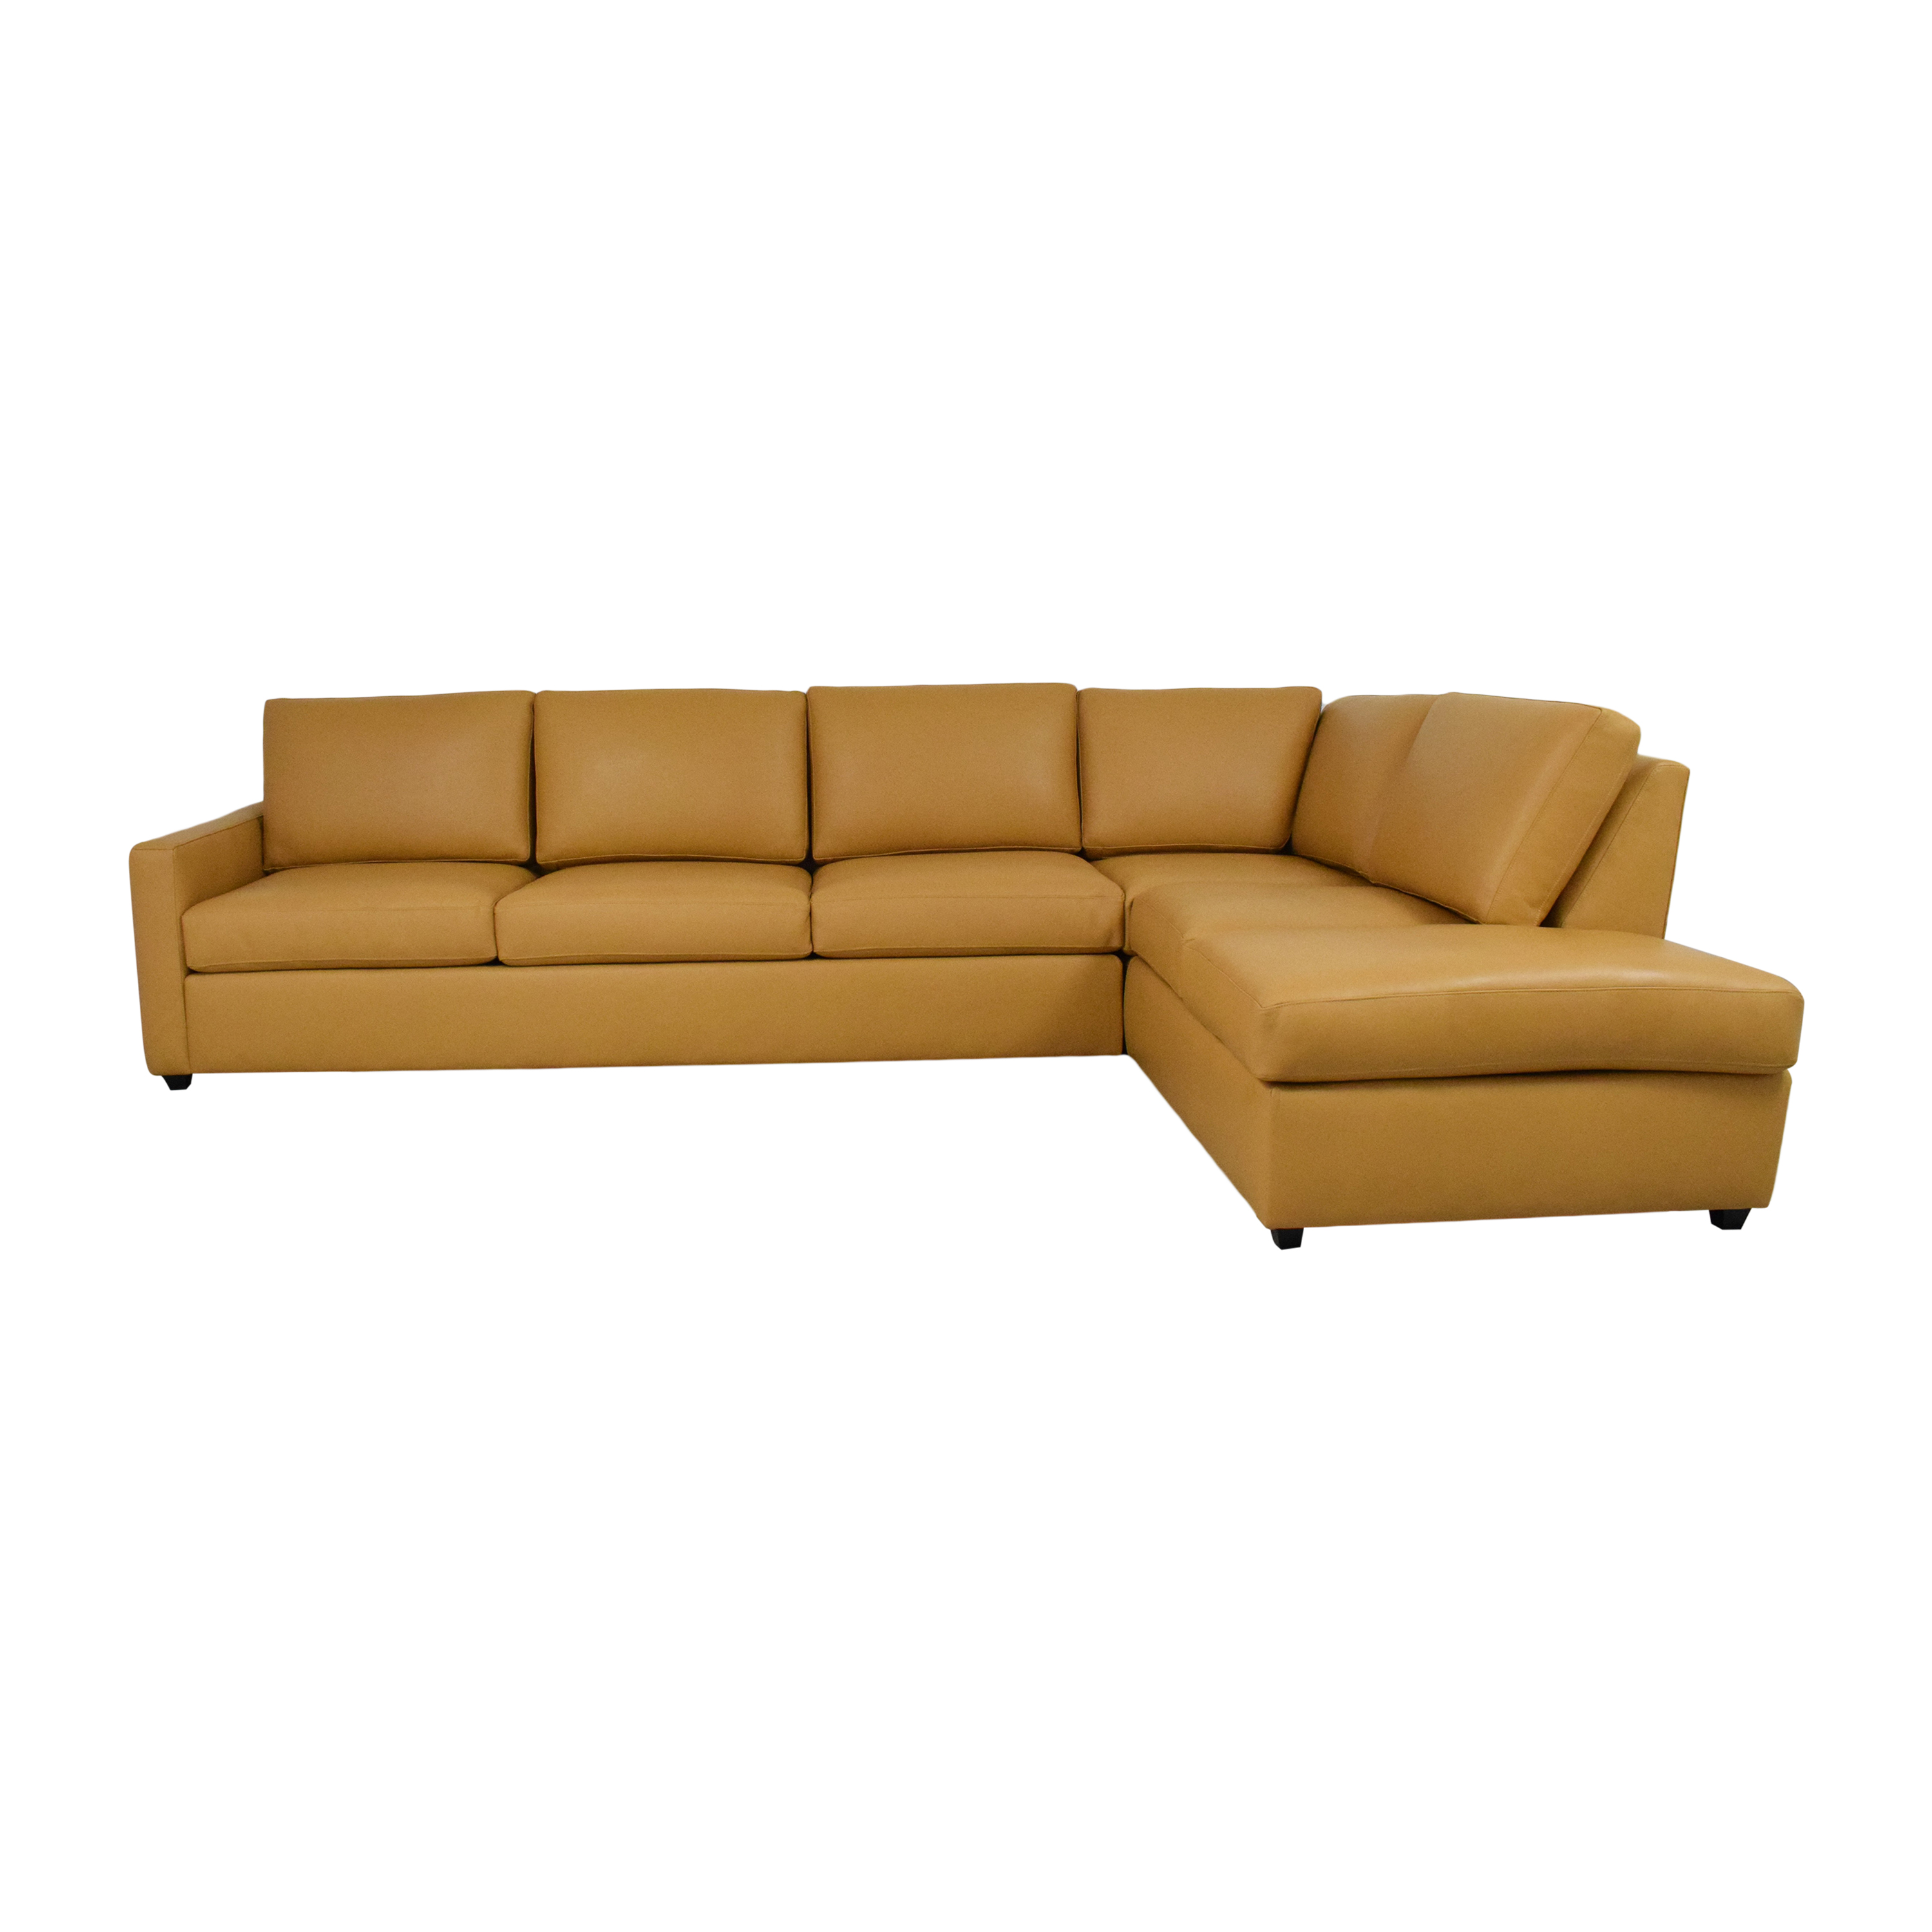 BenchMade Modern Couch Potato Lite Sectional with Bumper sale